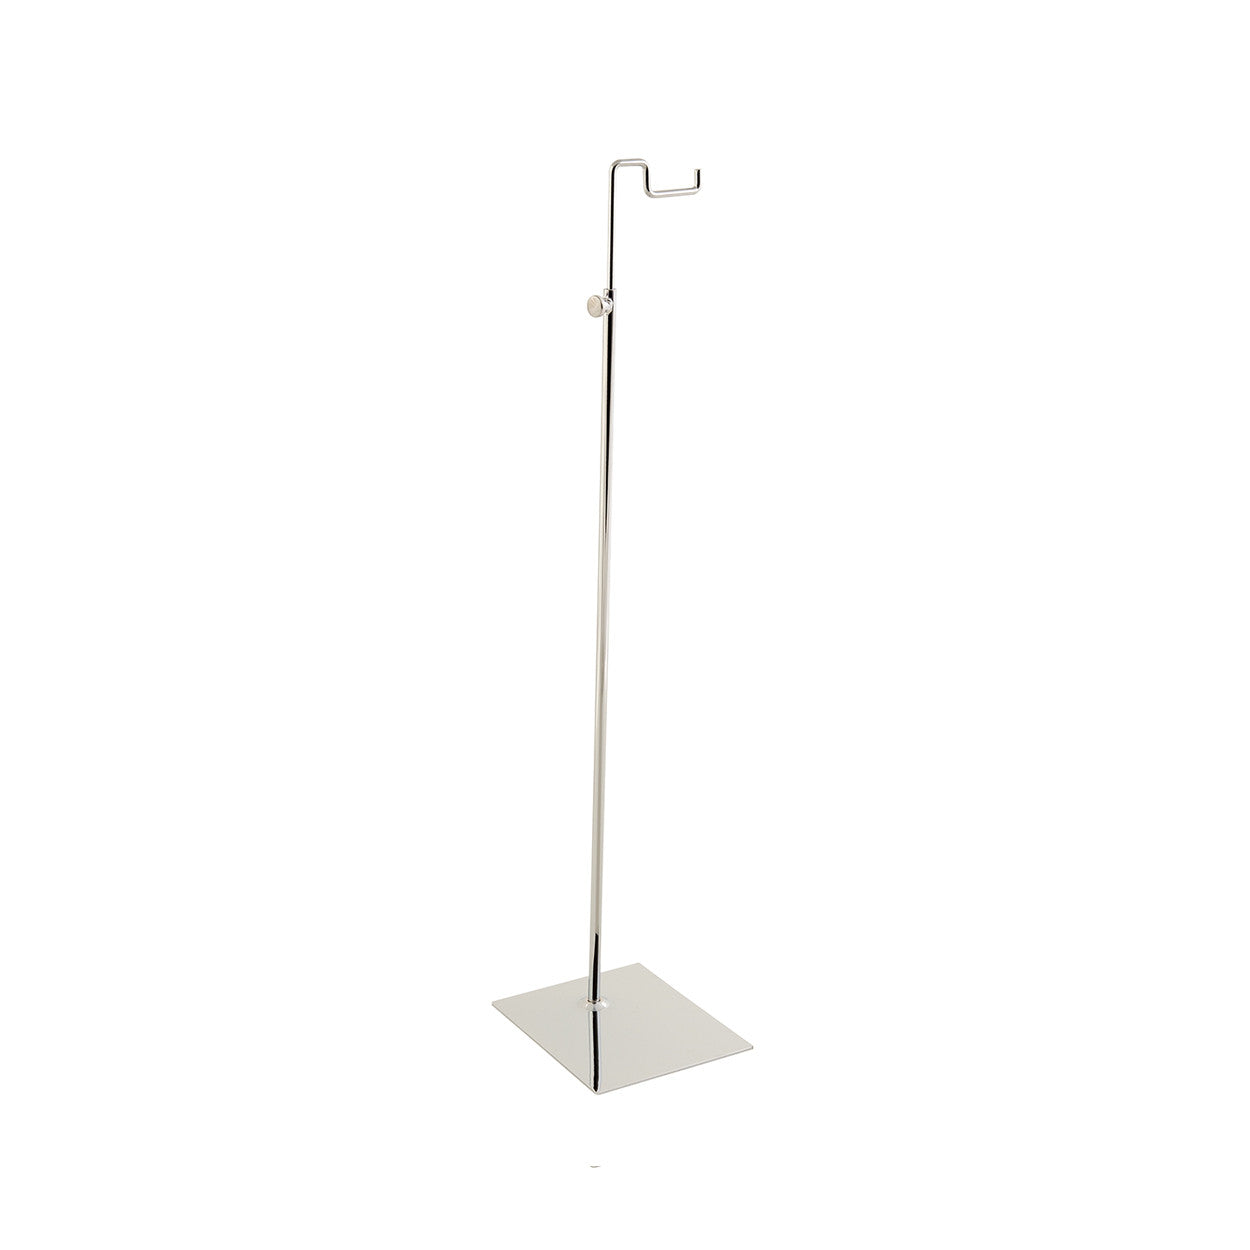 Budget handbag display stand large with solid base  150x120 base,510-770 mm Adj H M2811CH